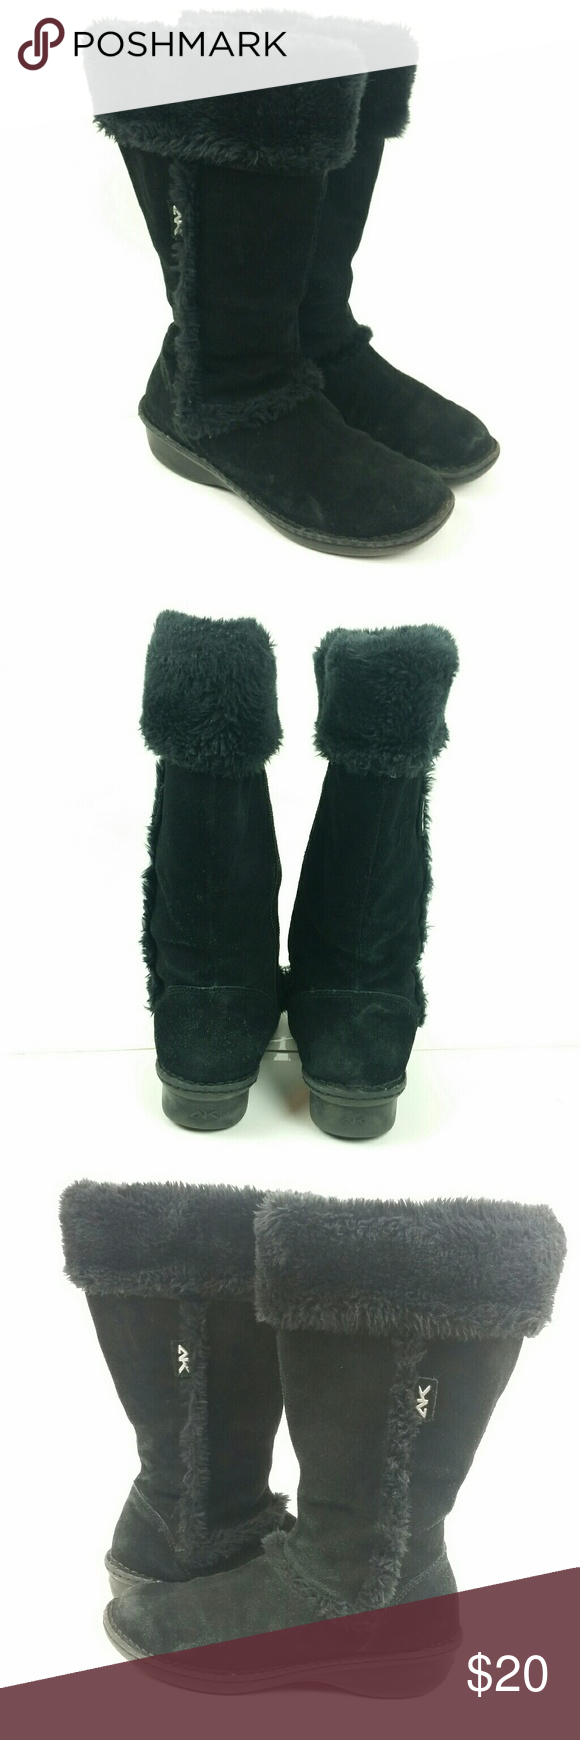 Anne Klein Sport fuzzy suede black boots 9/9.5 Anne Klein Sport fuzzy suede black boots. There's no size marking, but I think I bought them in size 9. I wear a 9.5 normally and these did fit great.  Pre-owned condition with some wear and discoloration. See pics! Priced accordingly. Still some life left in these great boots! :)  I'm always open to offers, so don't be shy!  SH-SSLSS-GO  090618 Anne Klein Sport Shoes Winter & Rain Boots